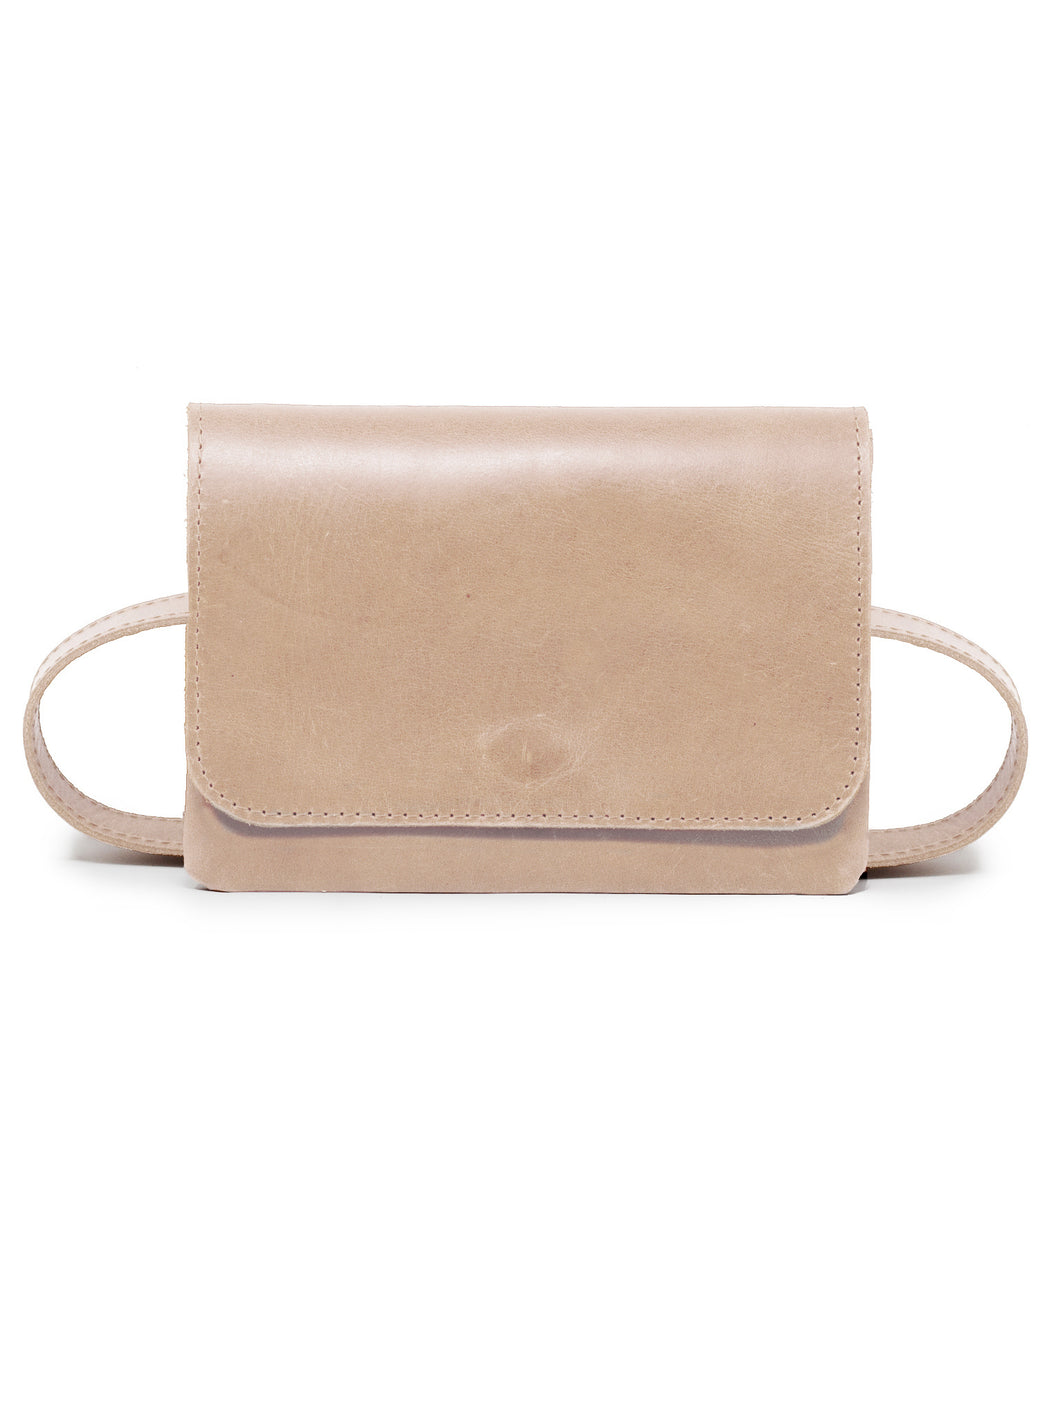 The Mare Belt Bag by ABLE